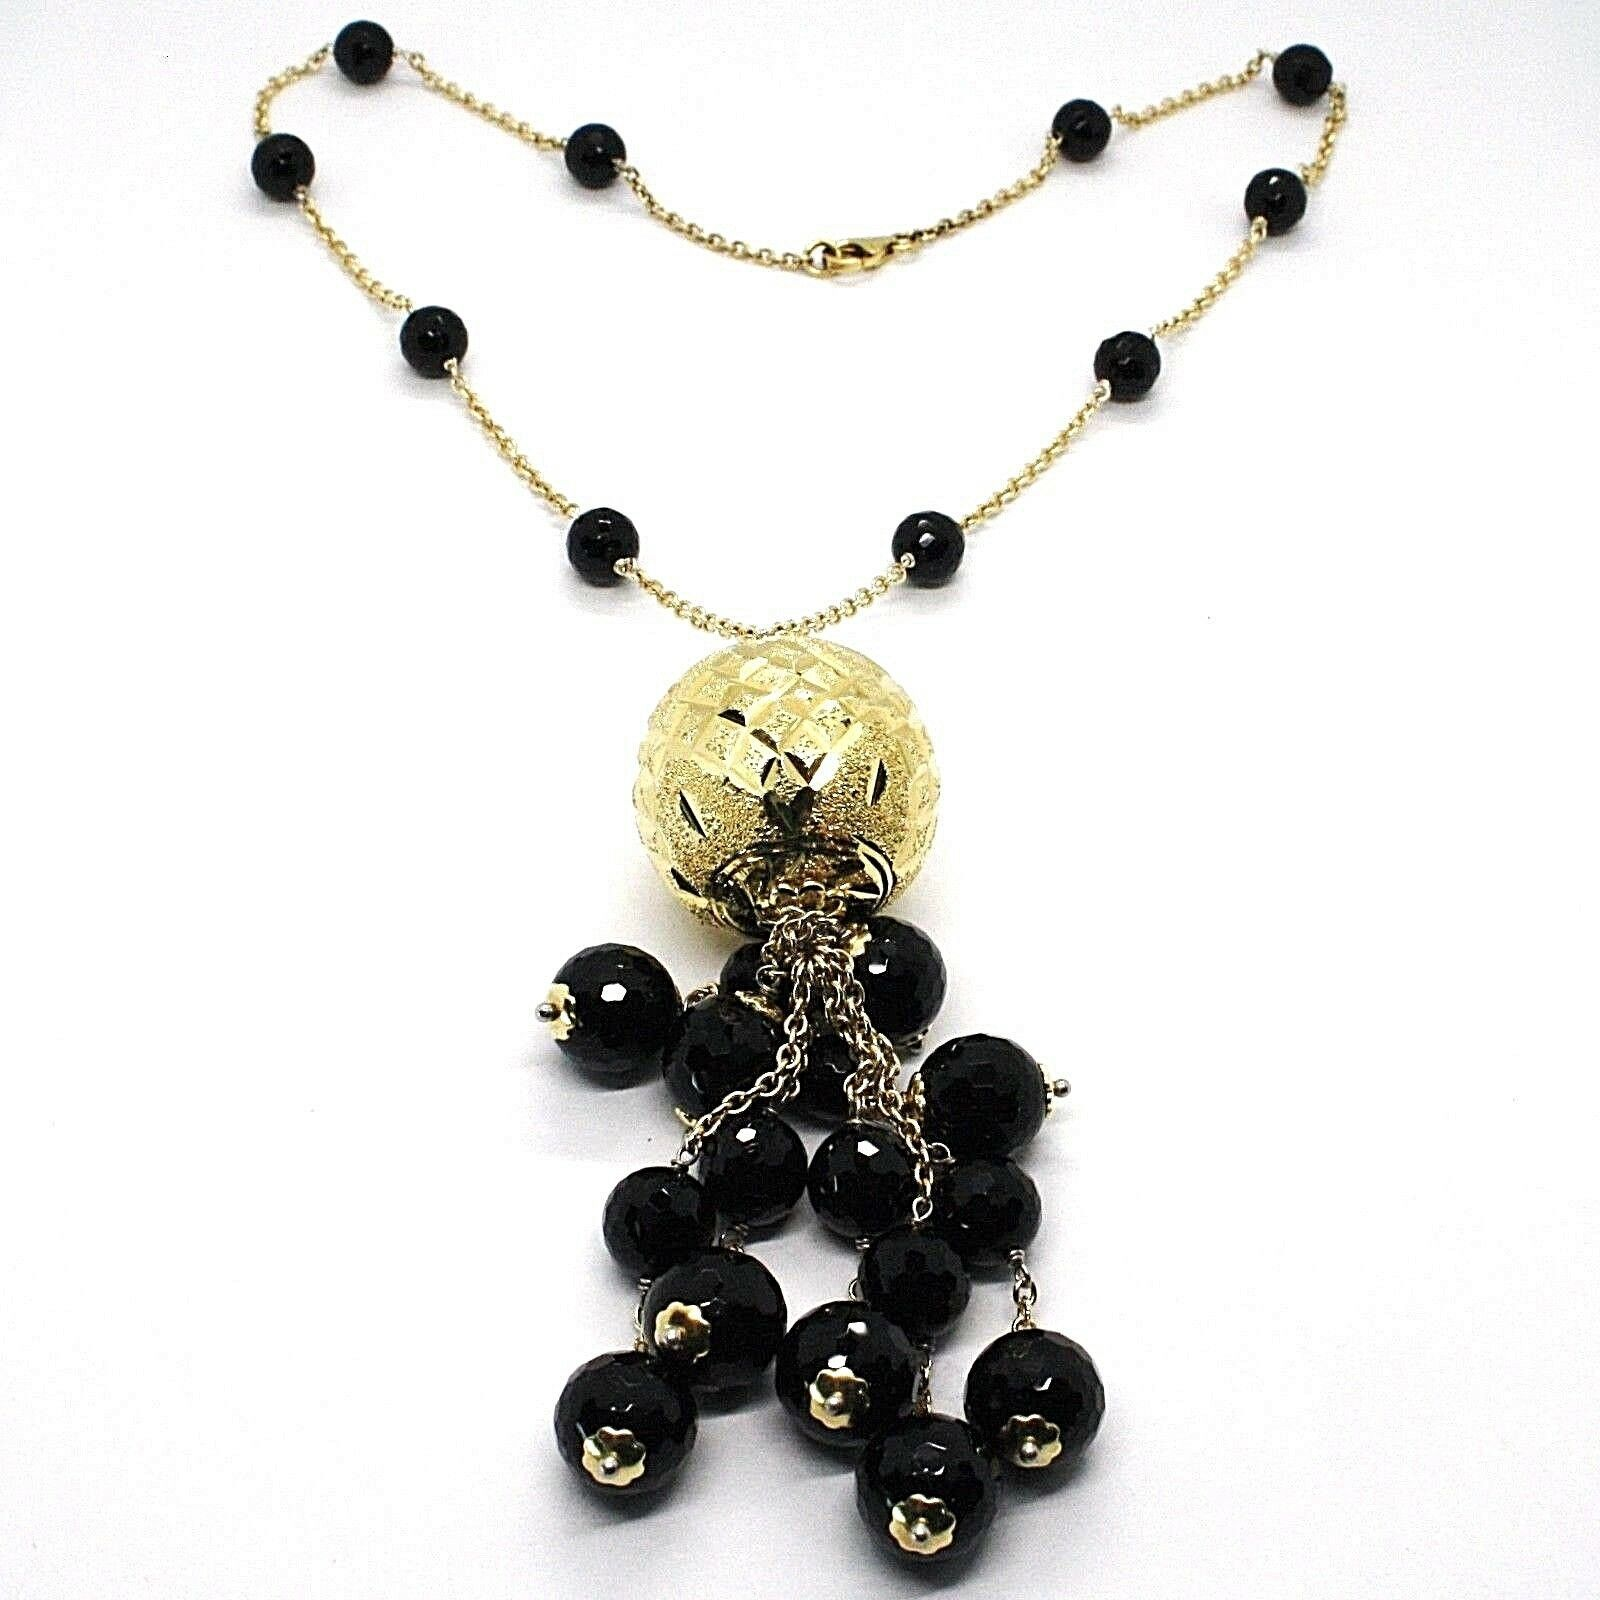 Necklace Silver 925, Yellow, Big Sphere Worked, Waterfall Onyx Black